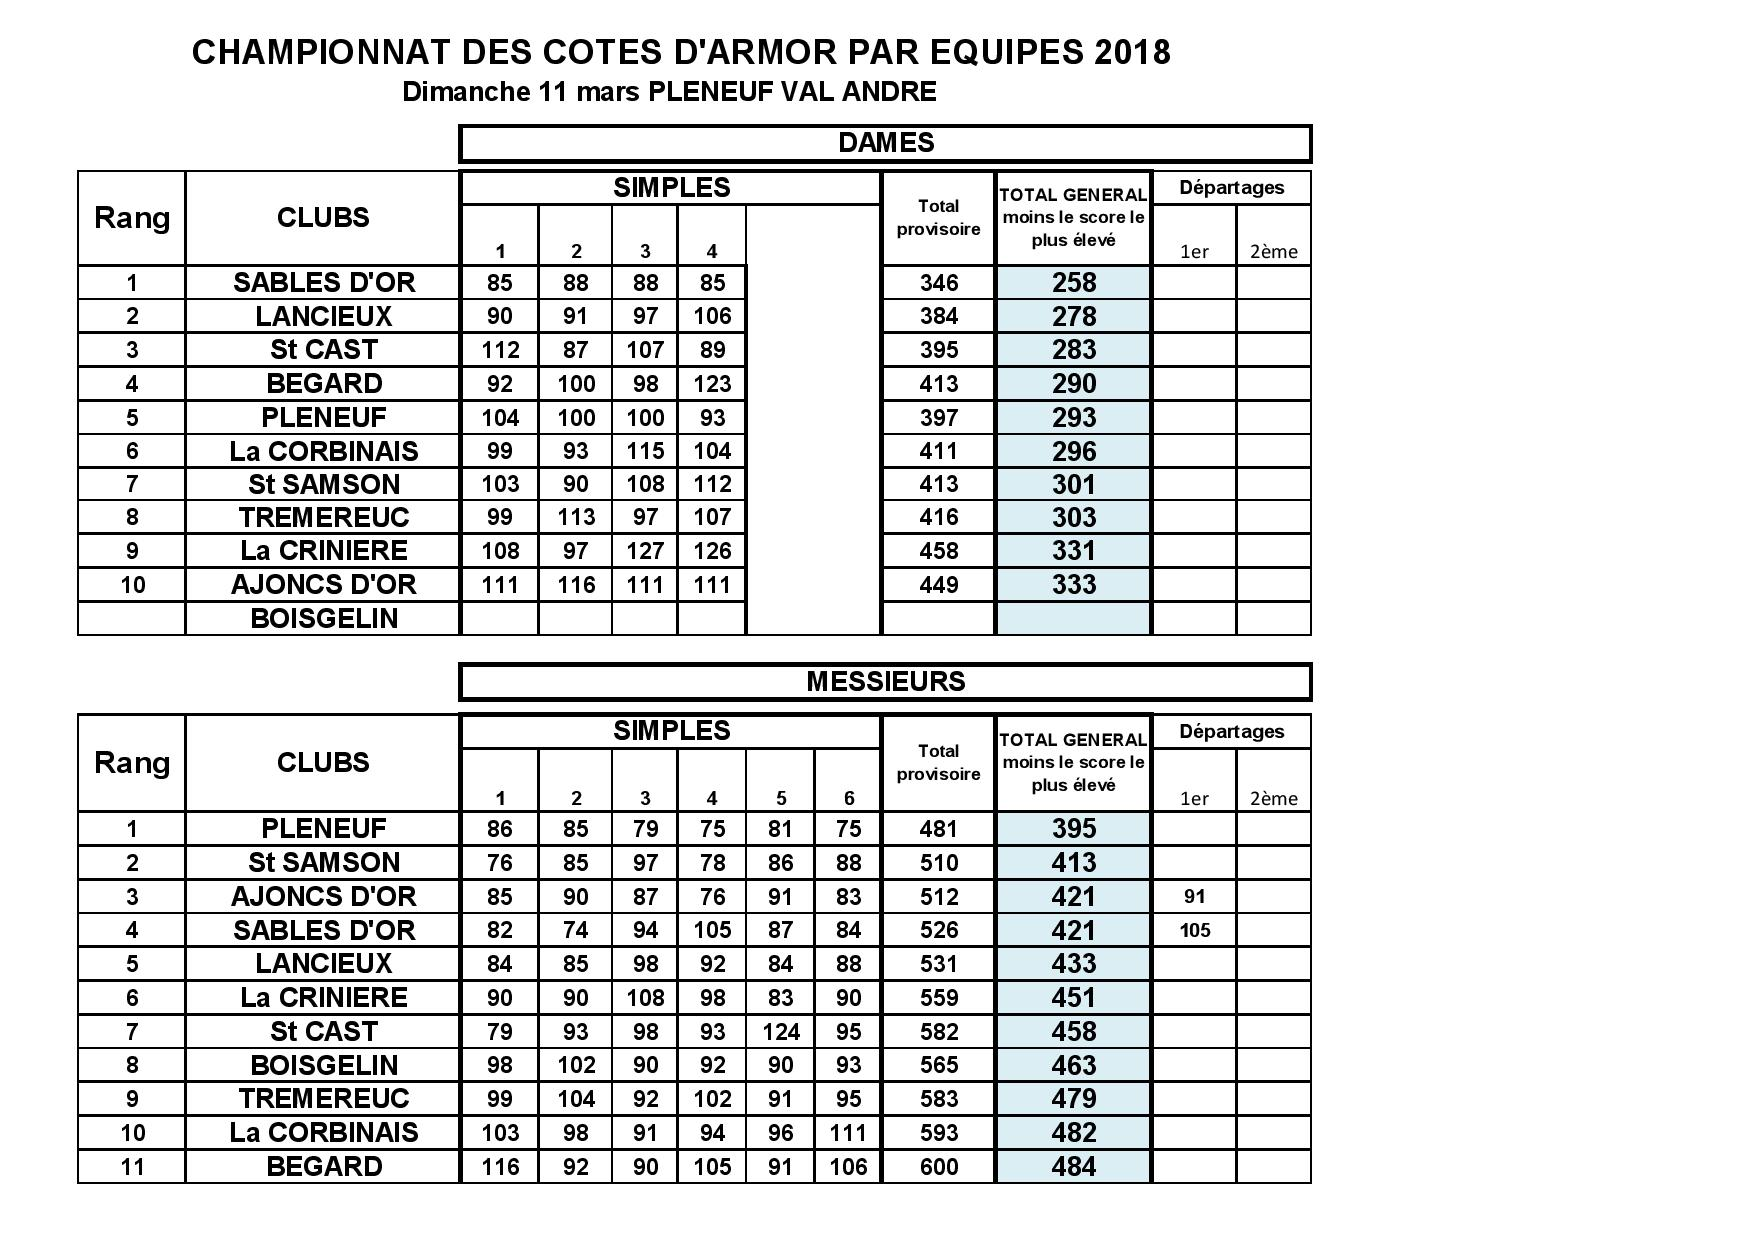 CD22_Championnat_equipes_2018-page-001.jpg